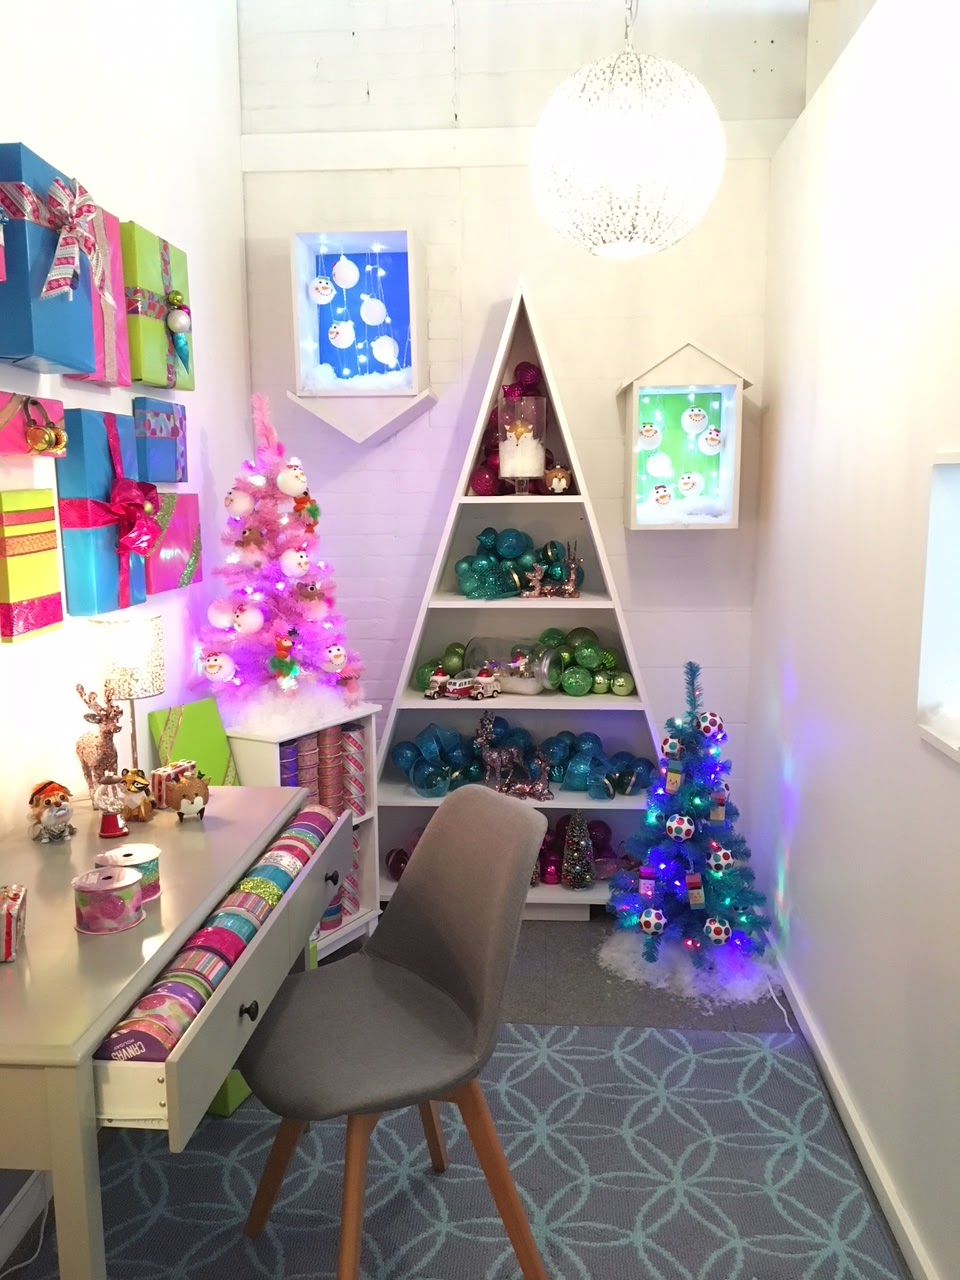 CANVAS Christmas with Canadian Tire #CTChristmas - Harlow & Thistle - Home  Design - Lifestyle - DIY